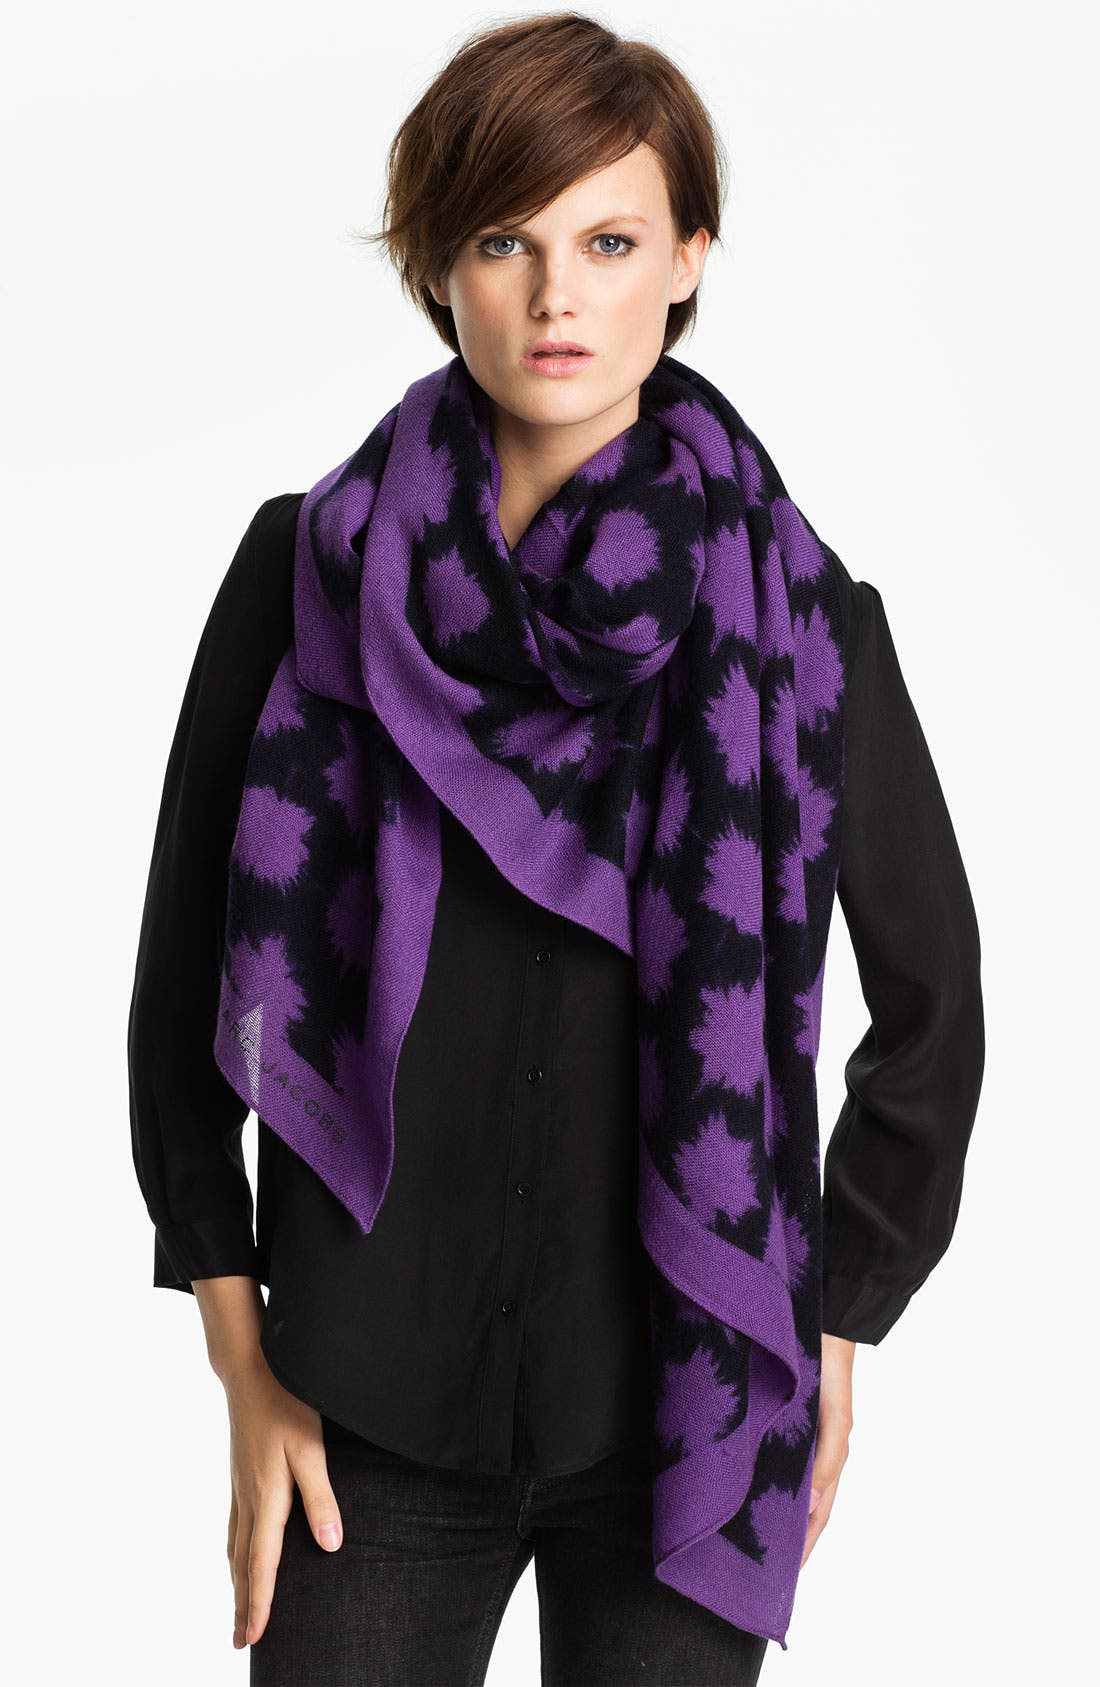 Alternate Image 1 Selected - MARC BY MARC JACOBS 'Sparks Print' Wool Scarf